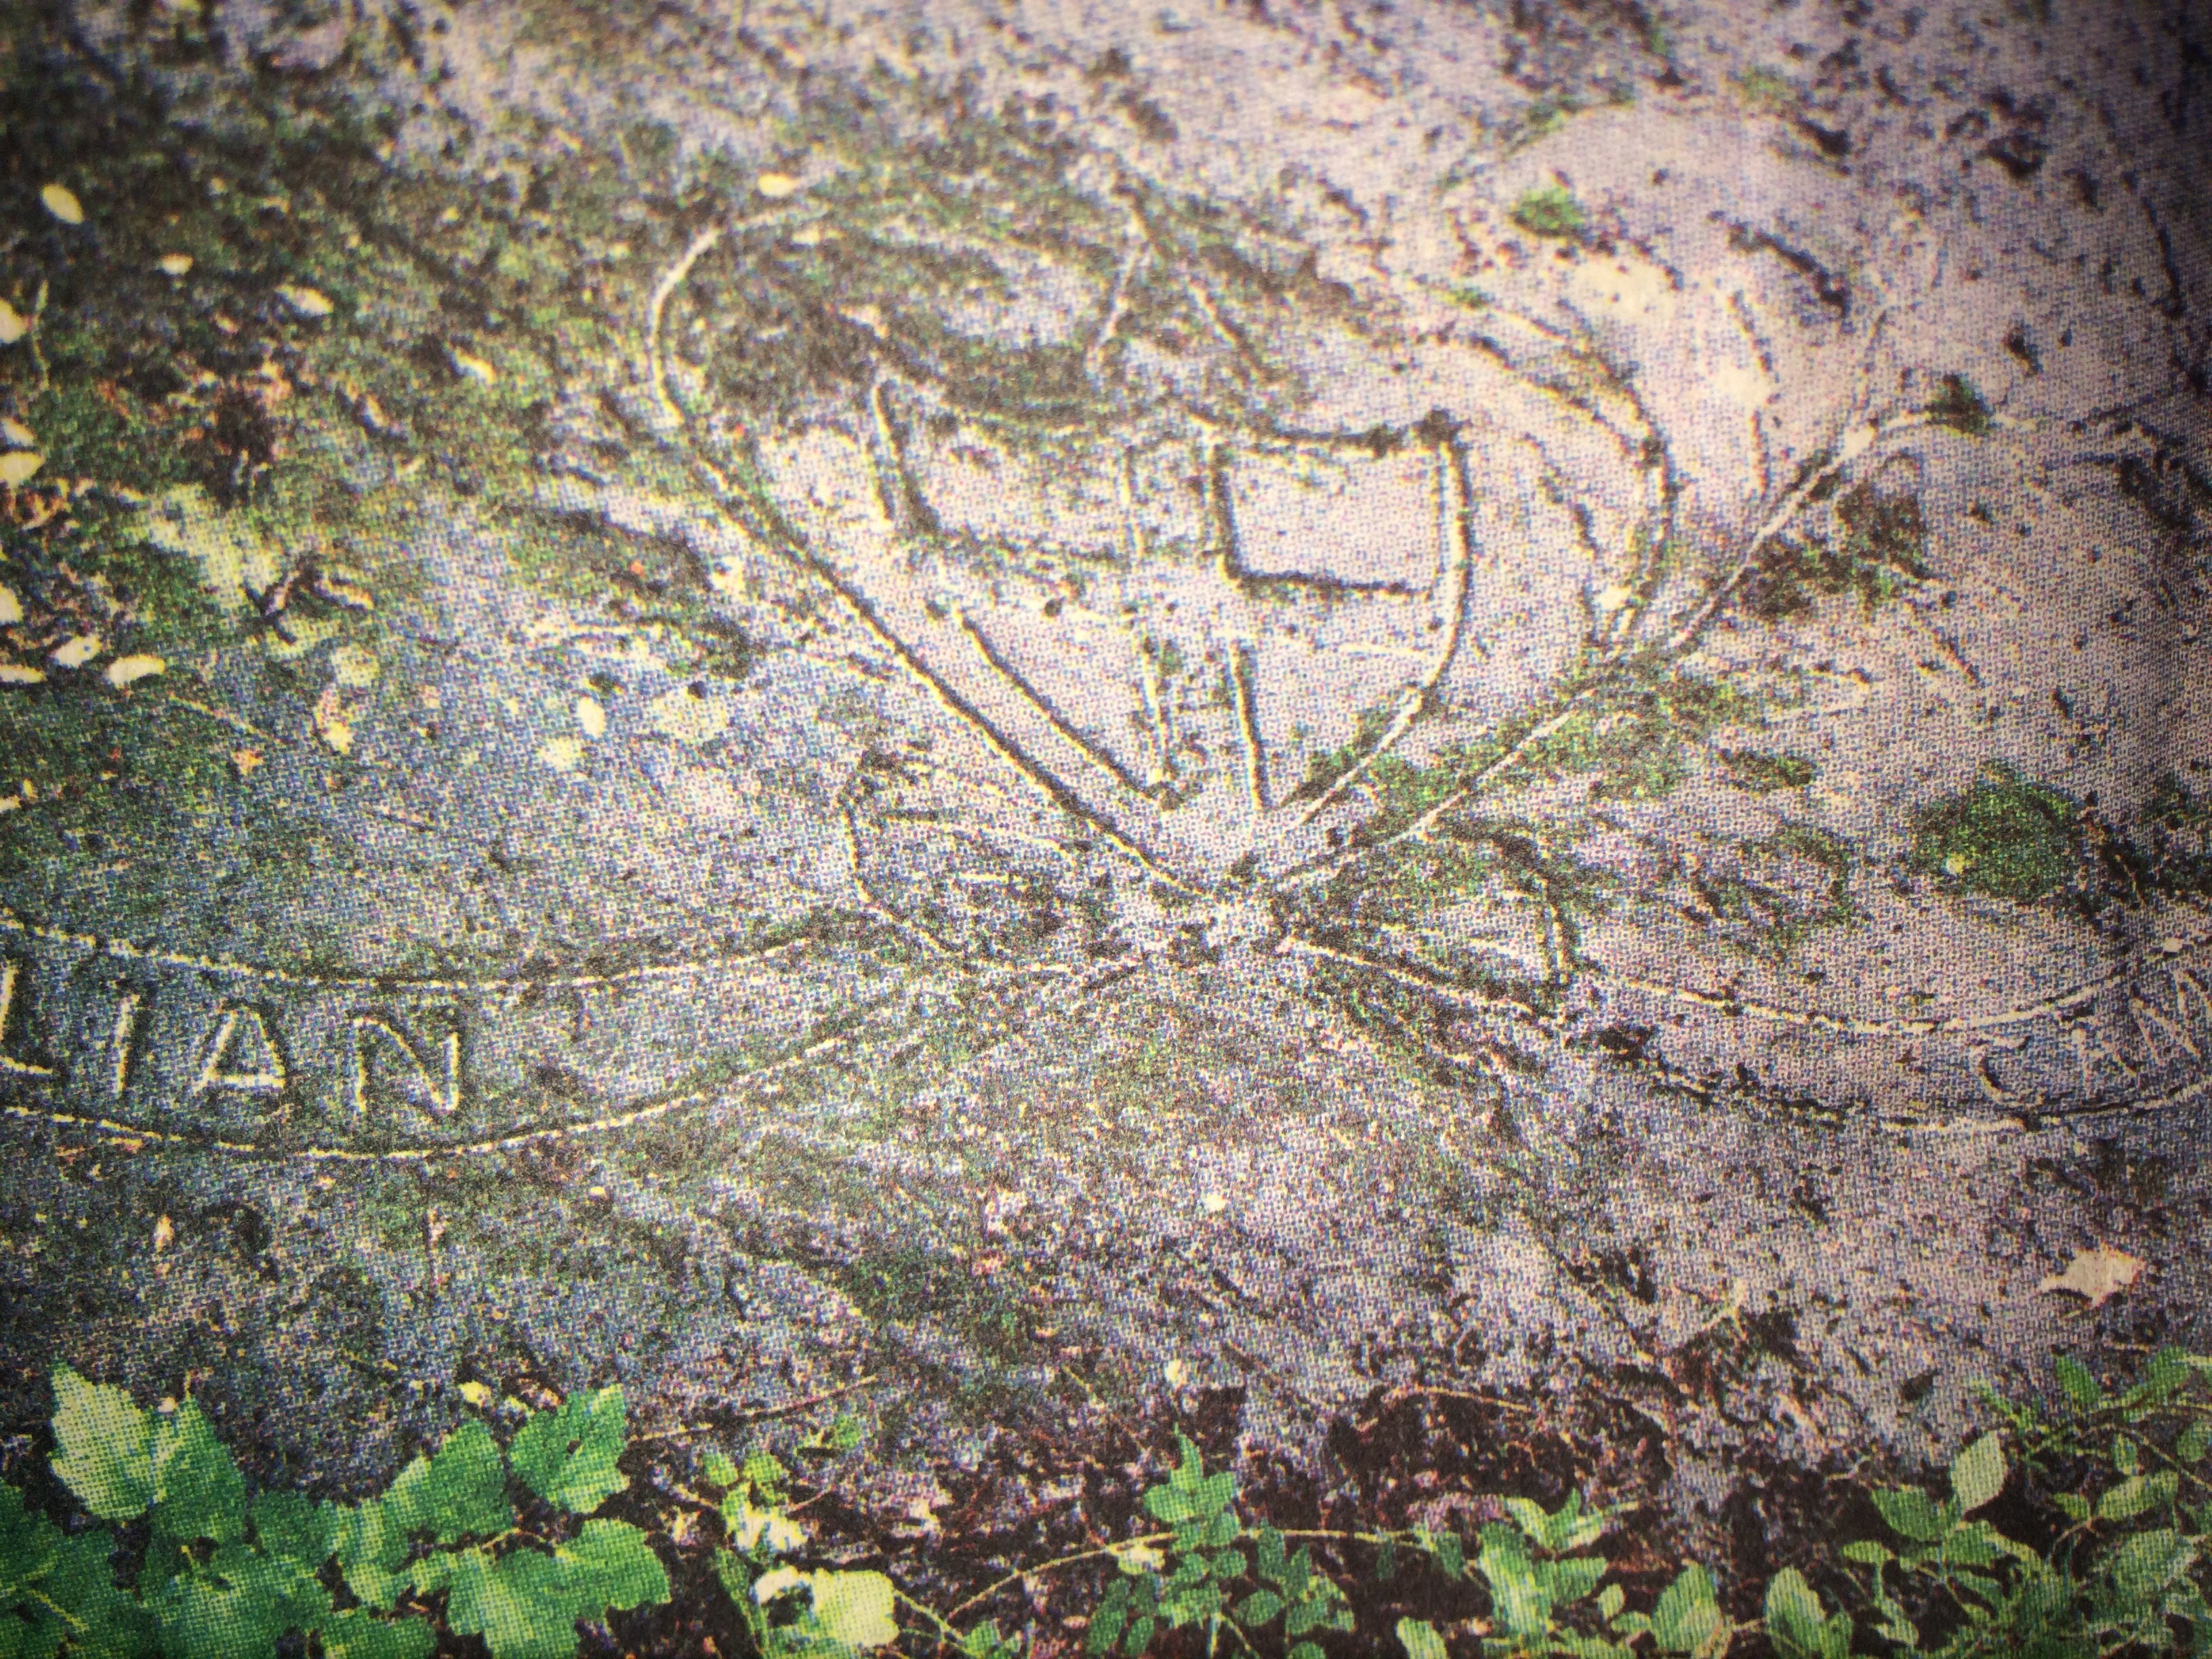 Here the shield (family crest) can be seen before the moss grew over it. (via Rick Steelhammer from the Gazette Mail June 3, 2007)